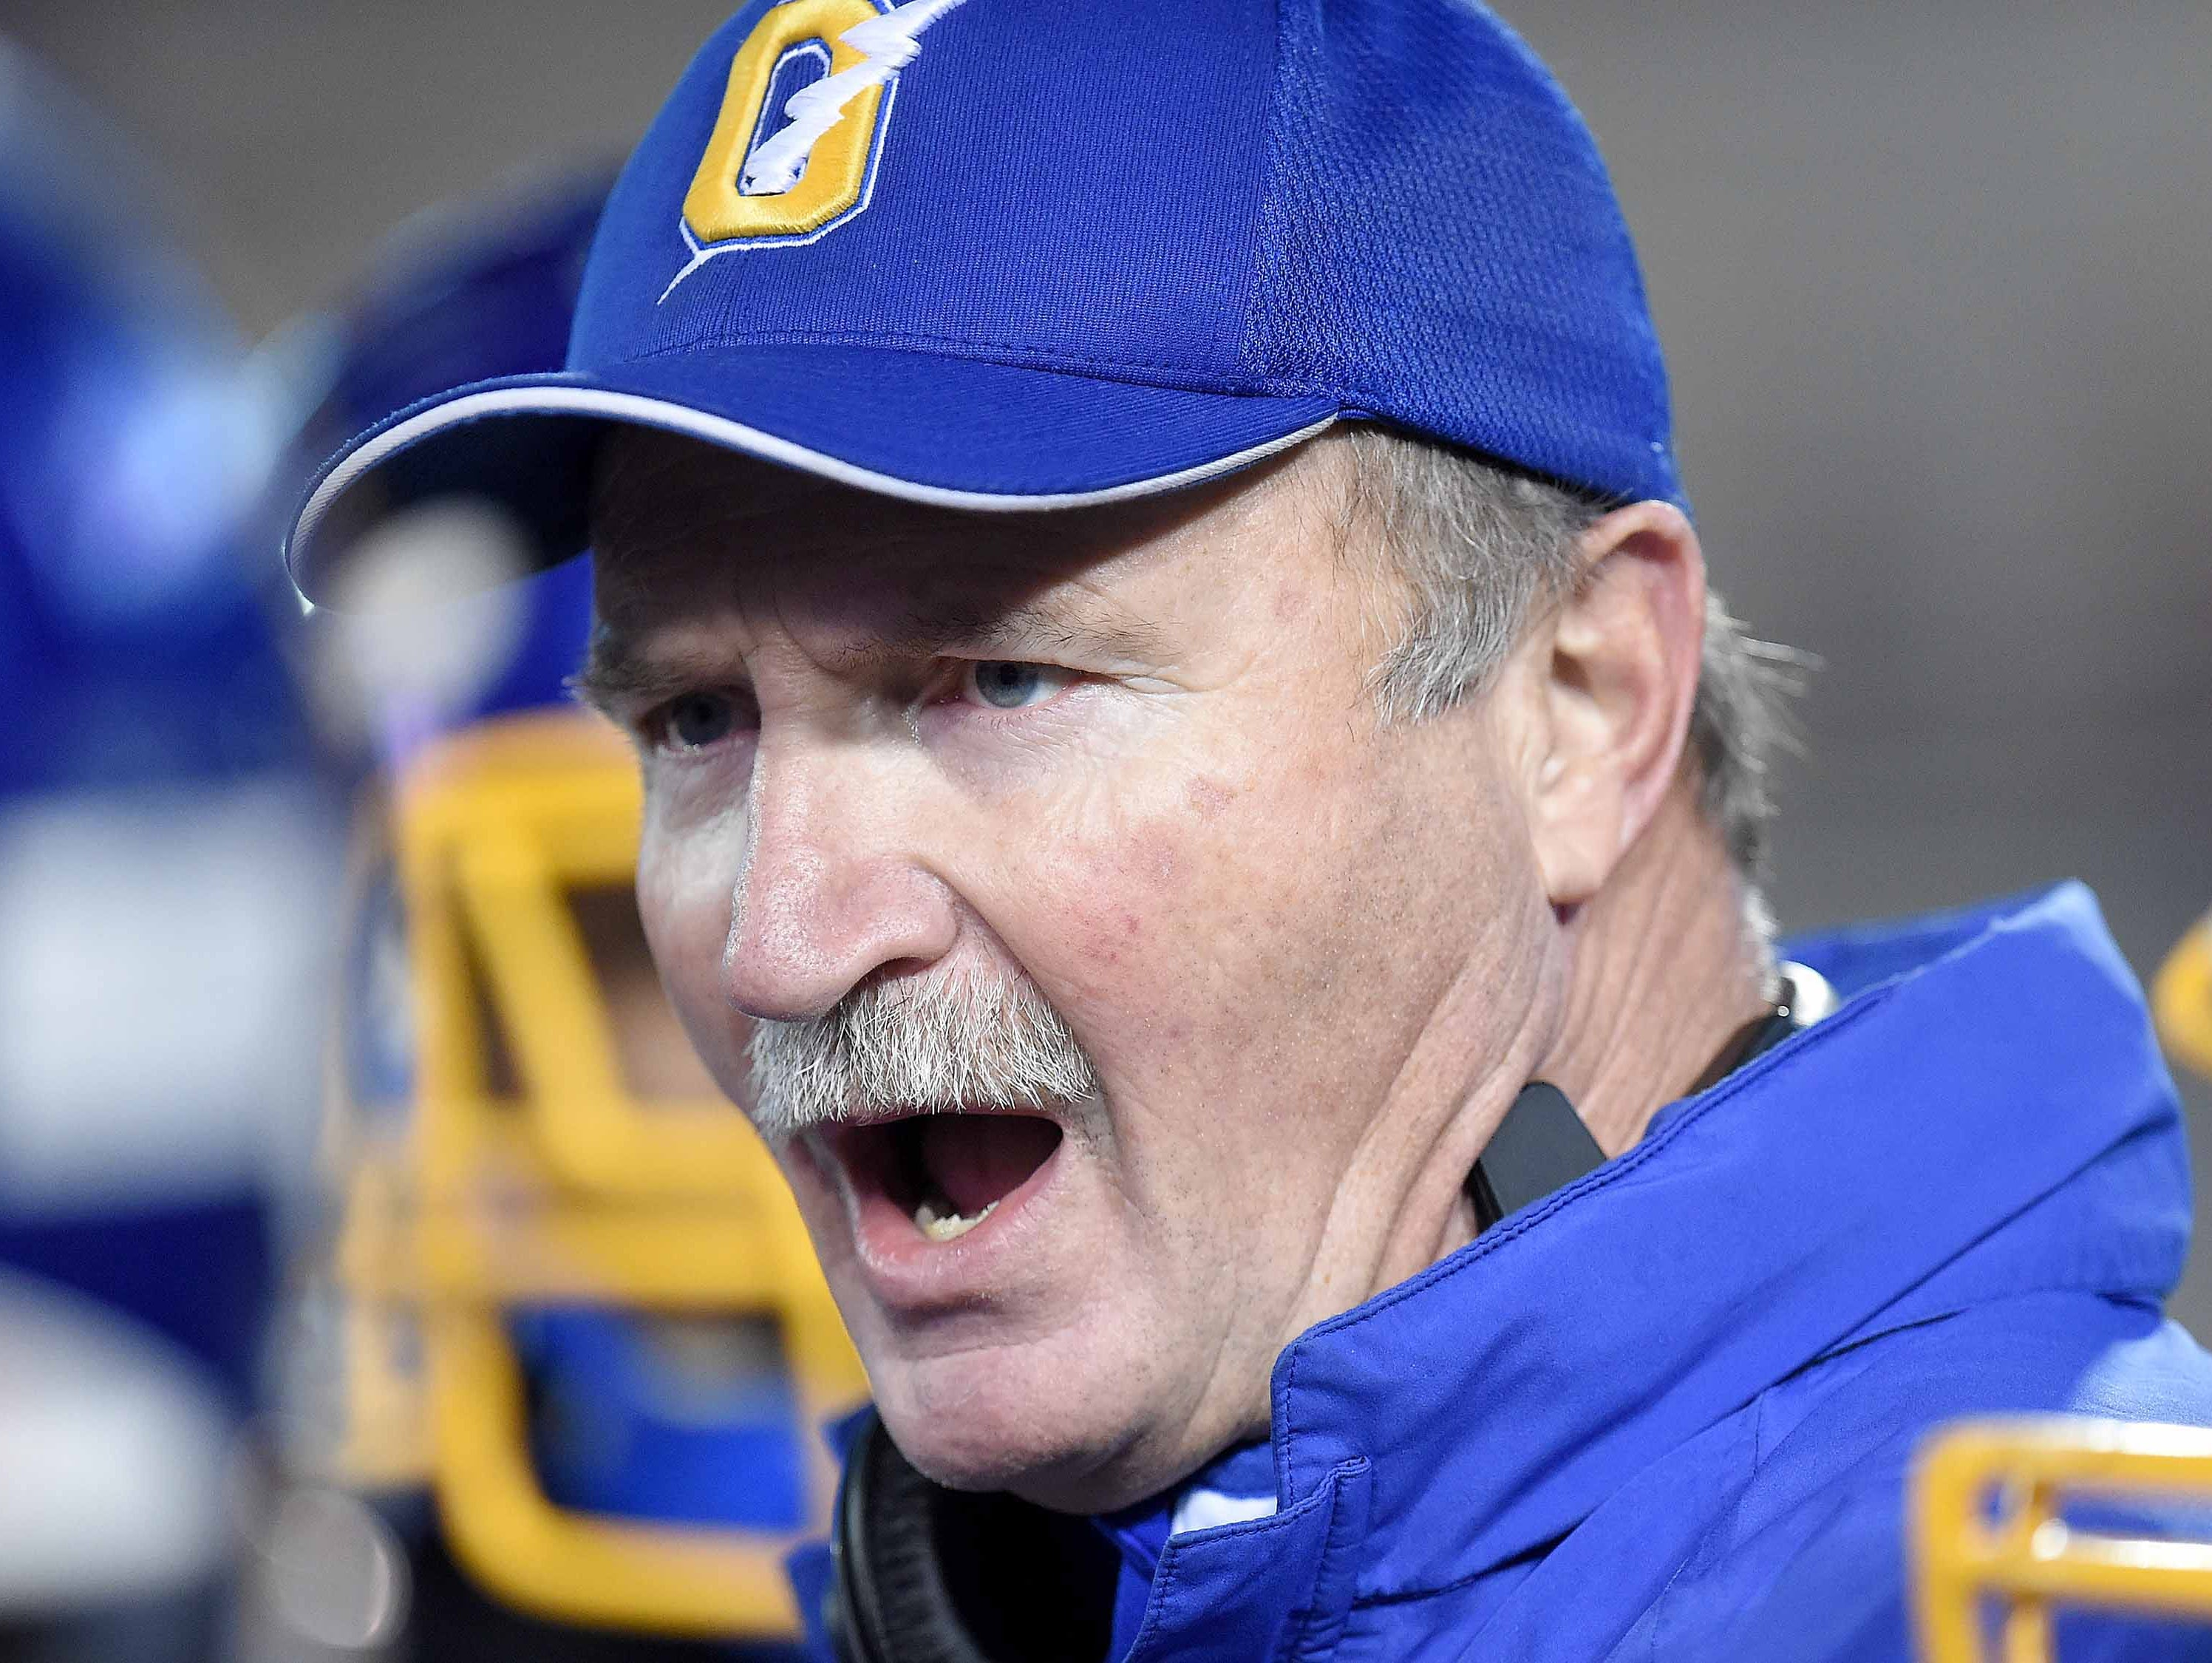 Oxford head coach Johnny Hill plans to retire following Saturday's Class 5A State Championship game.